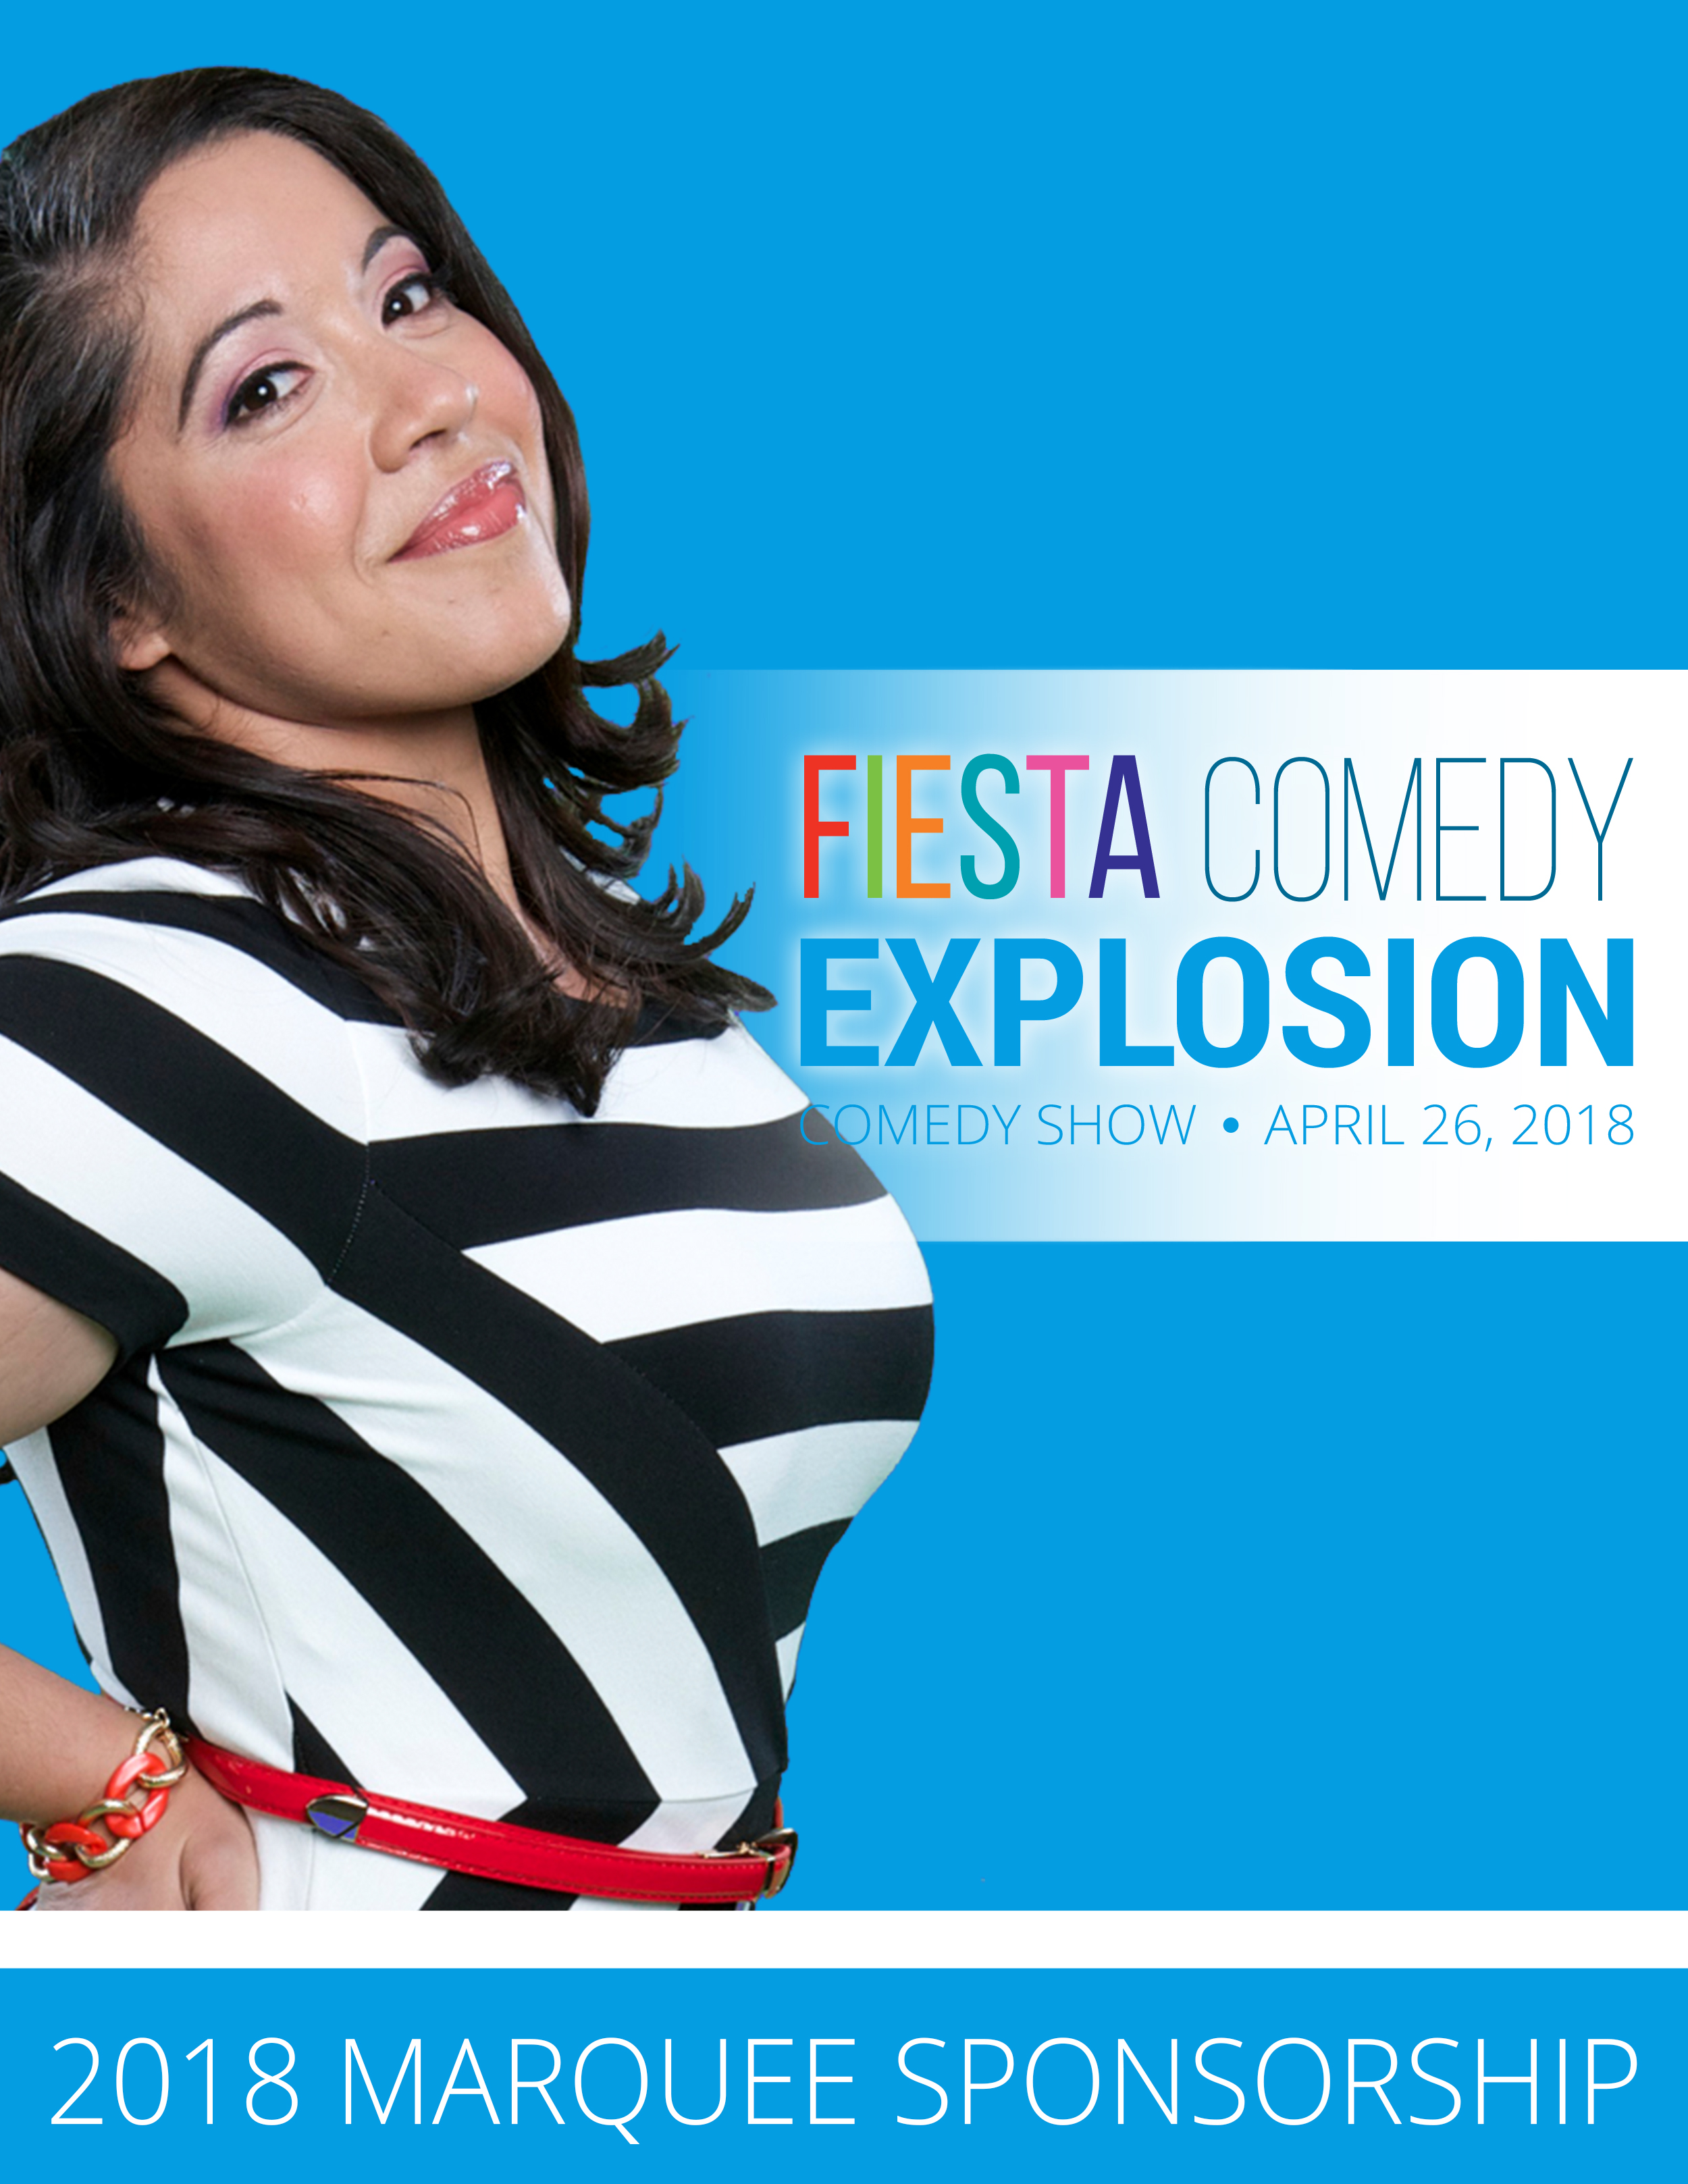 Marquee Sponsorship | Fiesta Comedy Explosion 2018 Sponsorship Package | Fiesta San Antonio | Official Priest Holmes Foundation Website | Priest Holmes Son | Priest Holmes Girlfriend | Priest Holmes Wife | Priest Holmes Engaged | Priest Holmes Family | Priest Holmes is Engaged